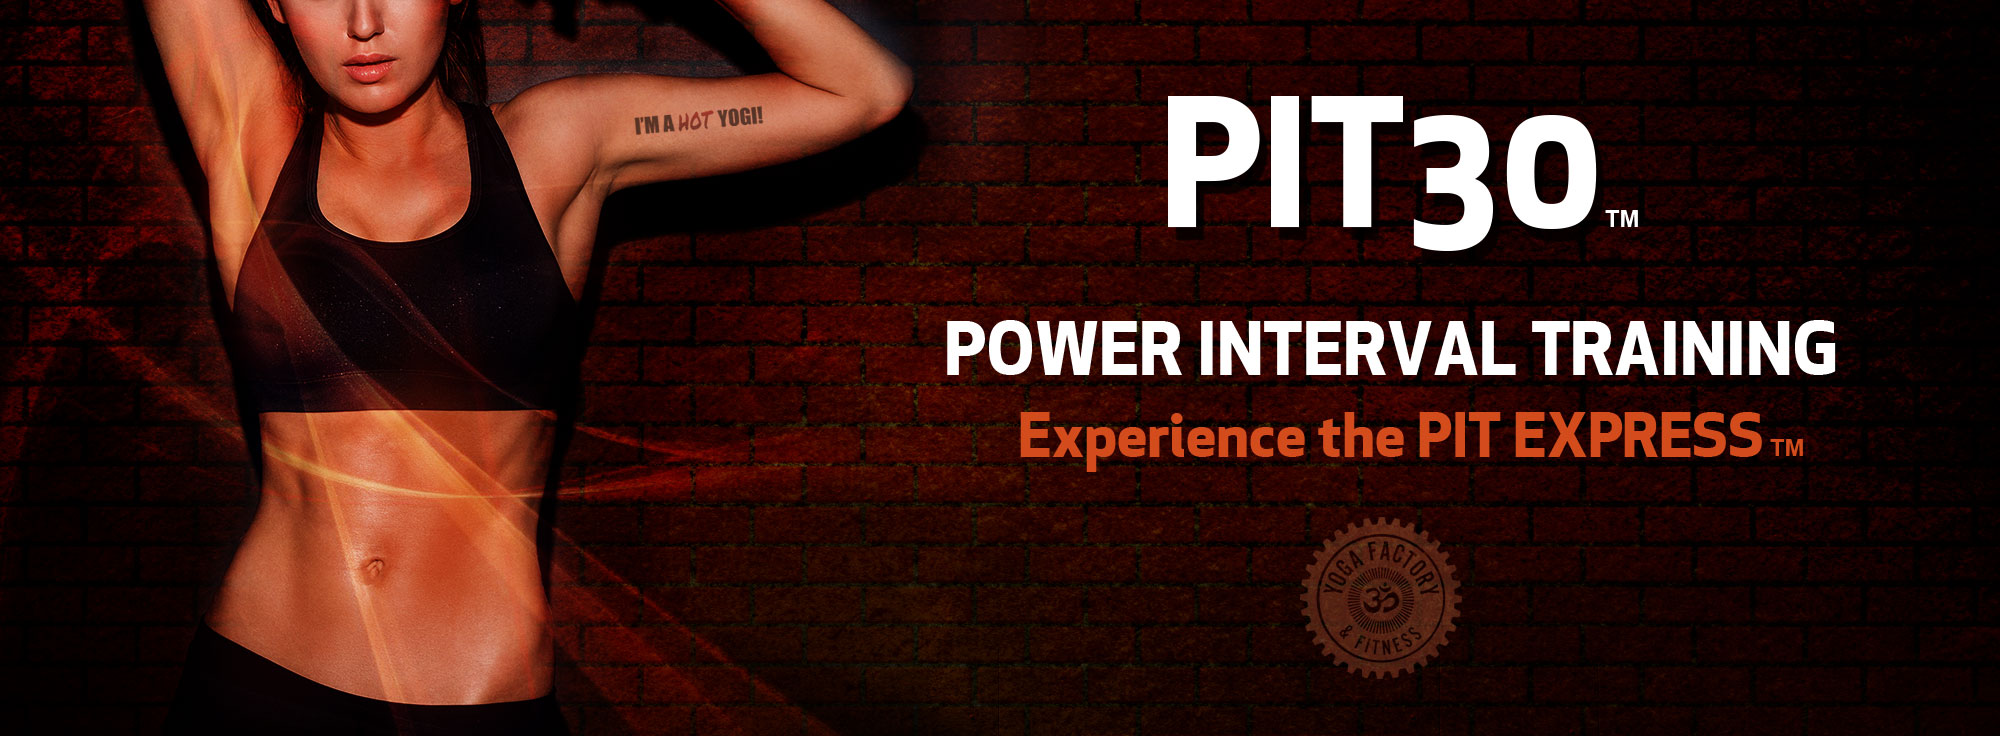 PIT30 Power Interval Training